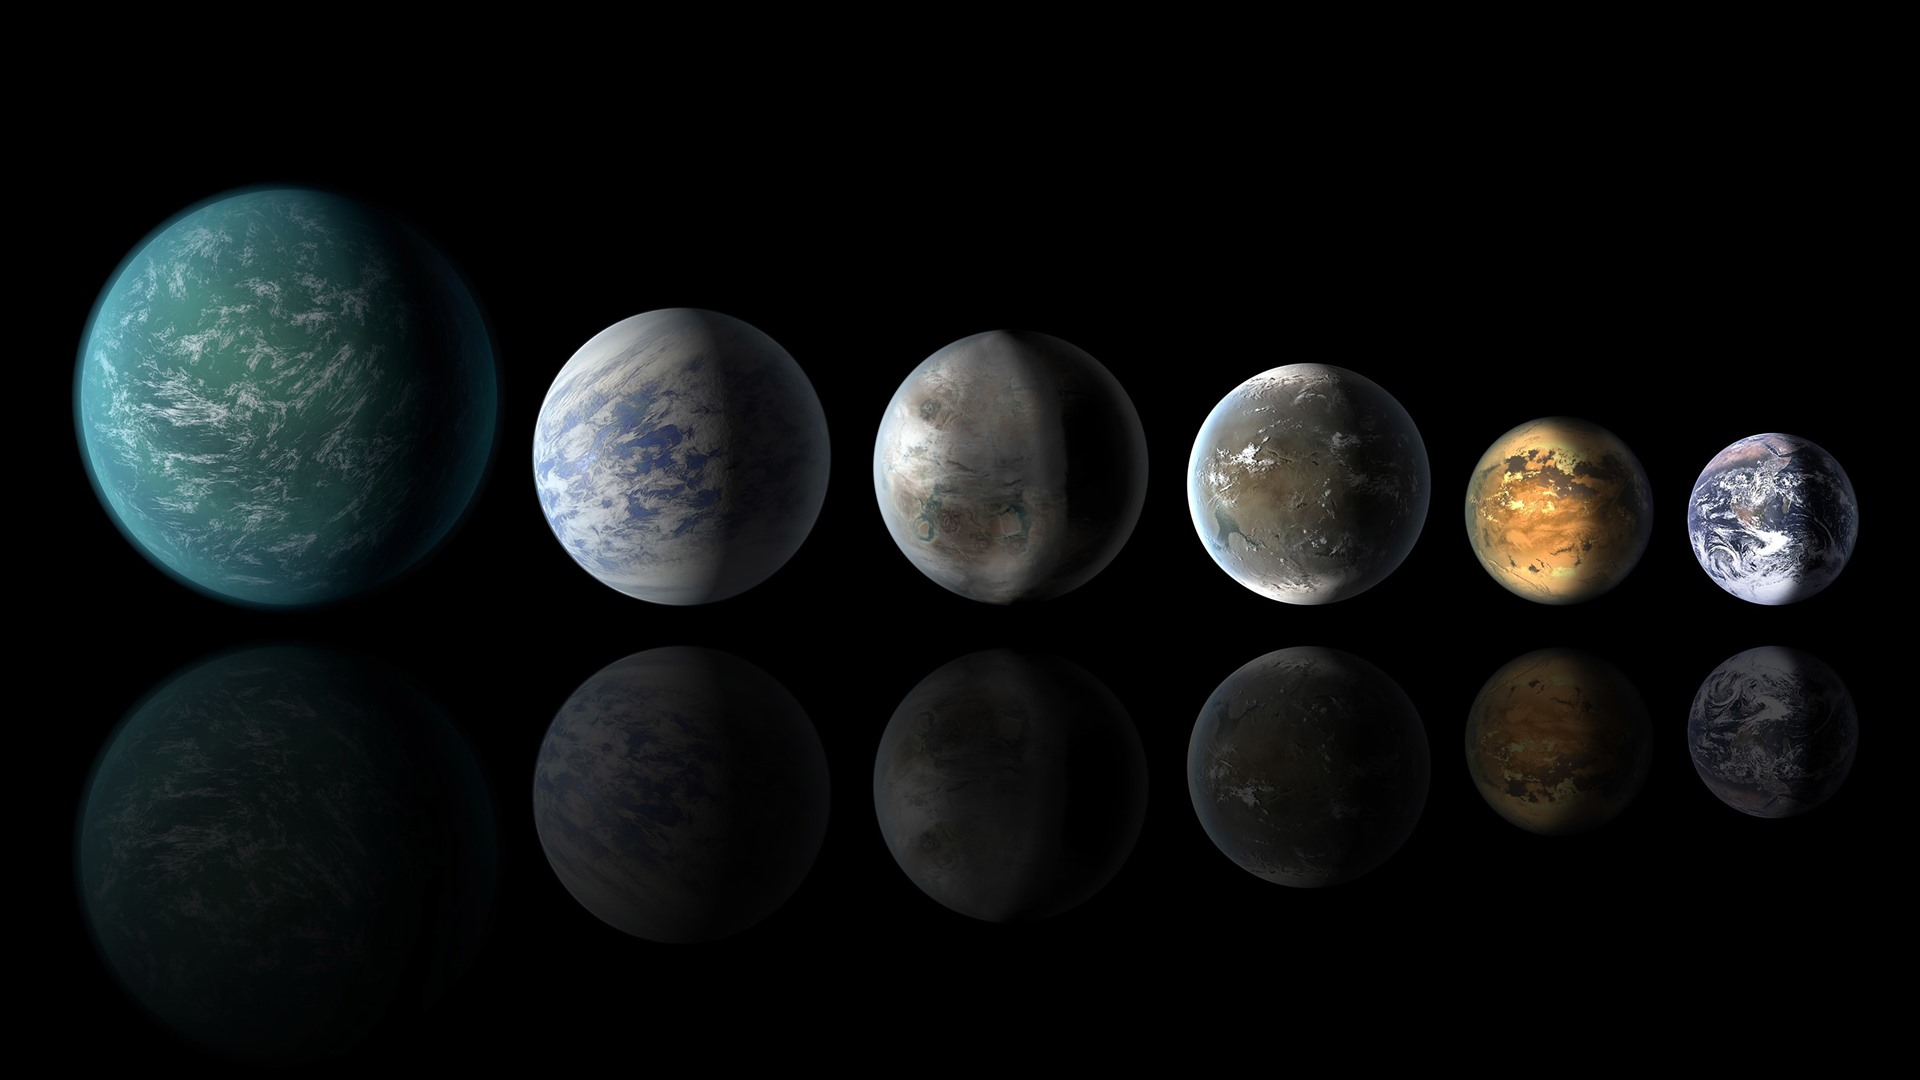 Wallpaper Solar System Six Planets Black Background